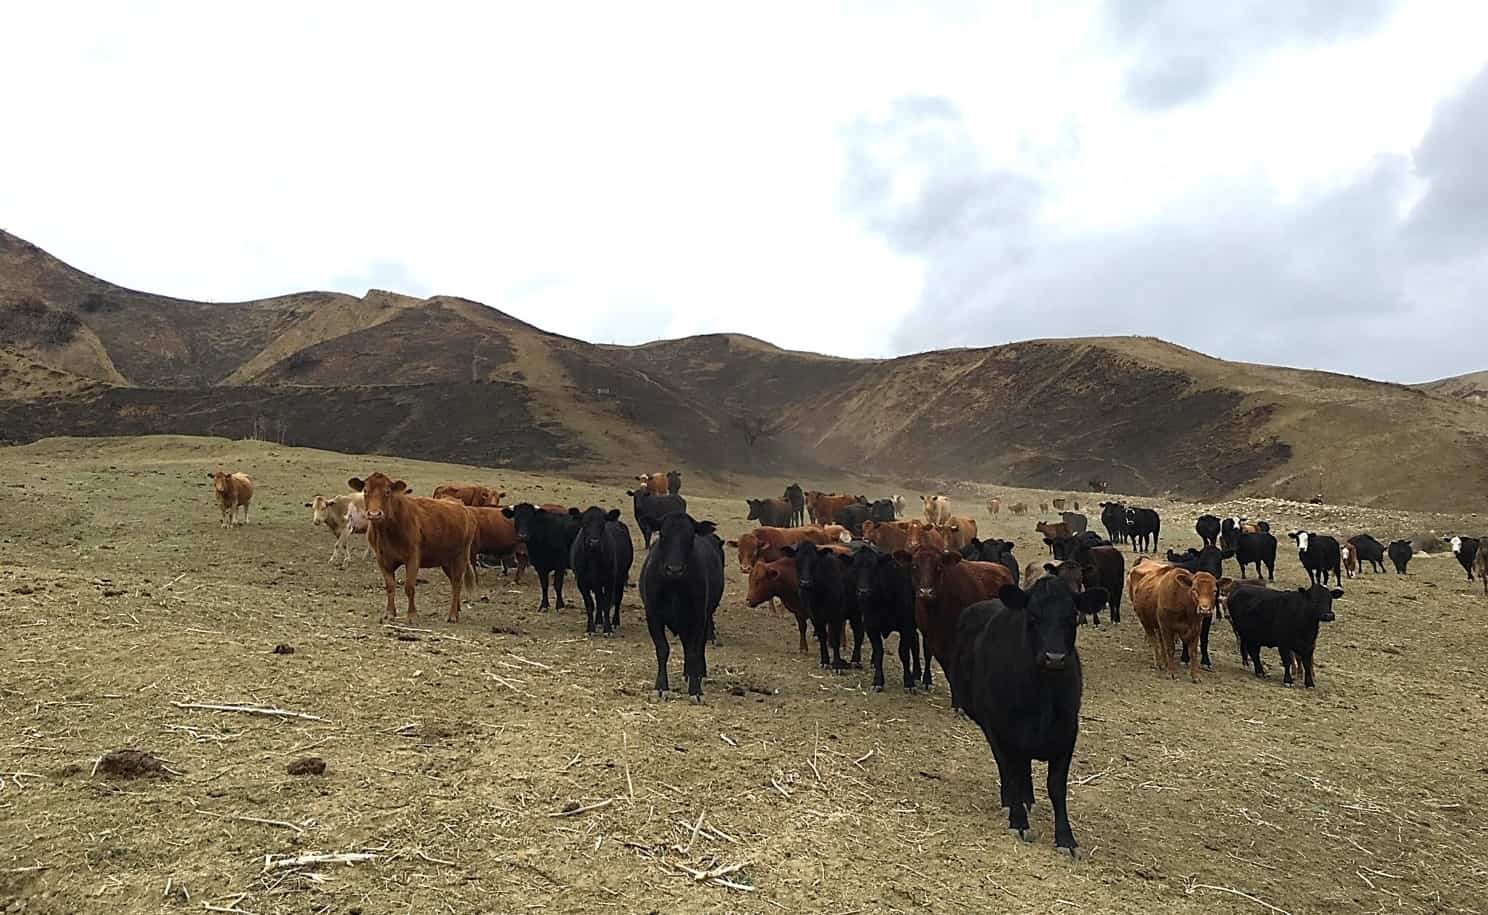 Cattle in a barren field